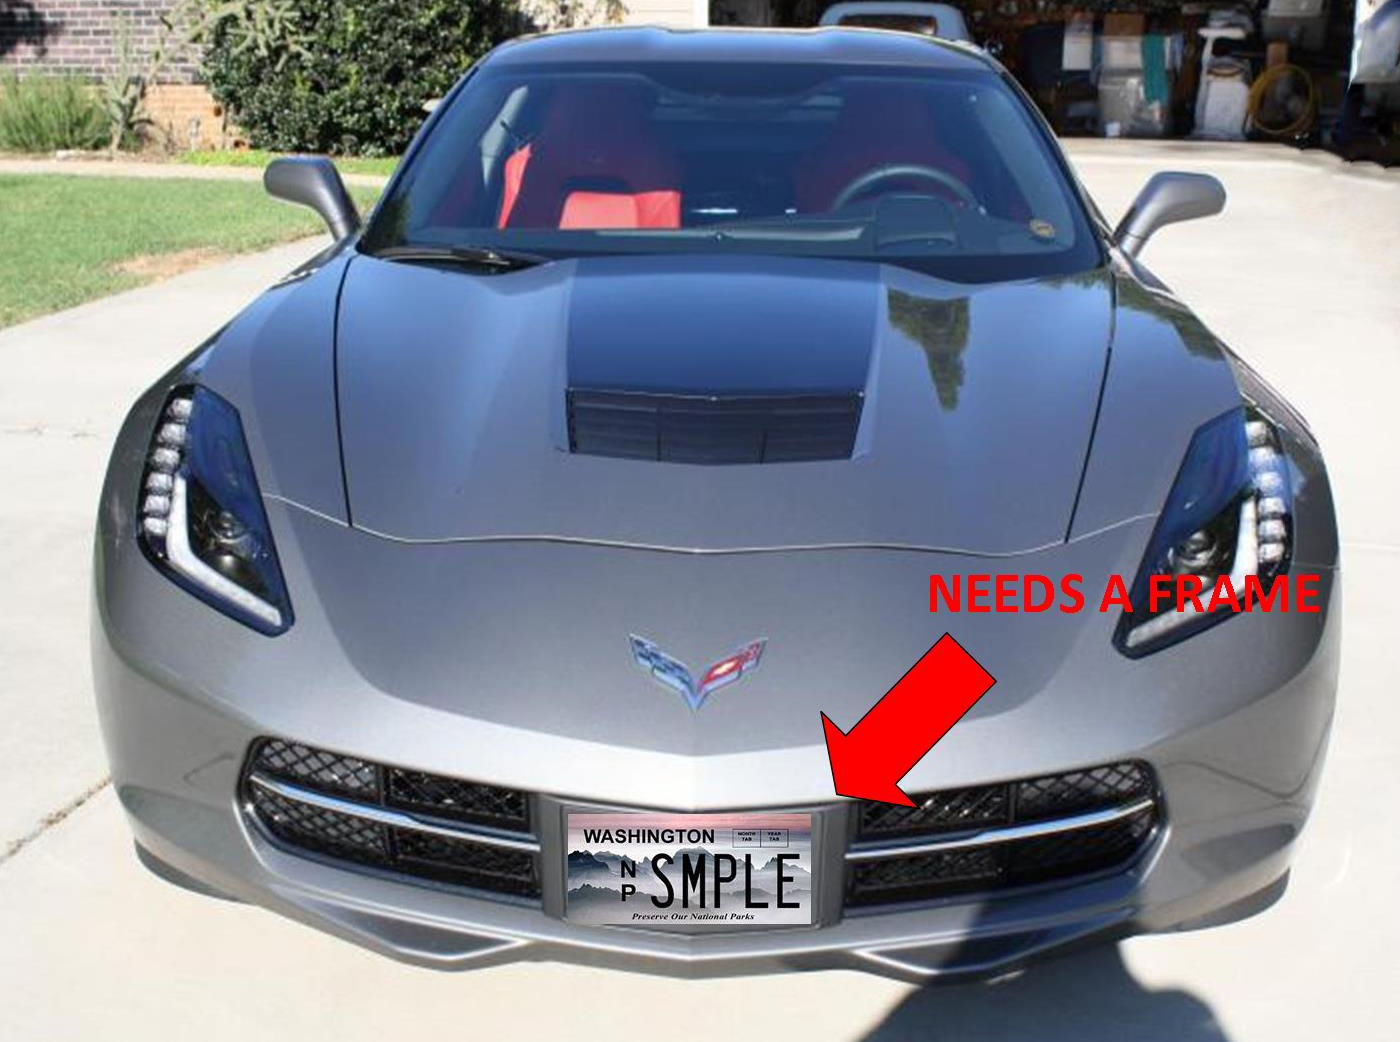 license plate frame that will fit the front aero panel on a c7 id like to find one the body color of the car shark gray or the color of the aero